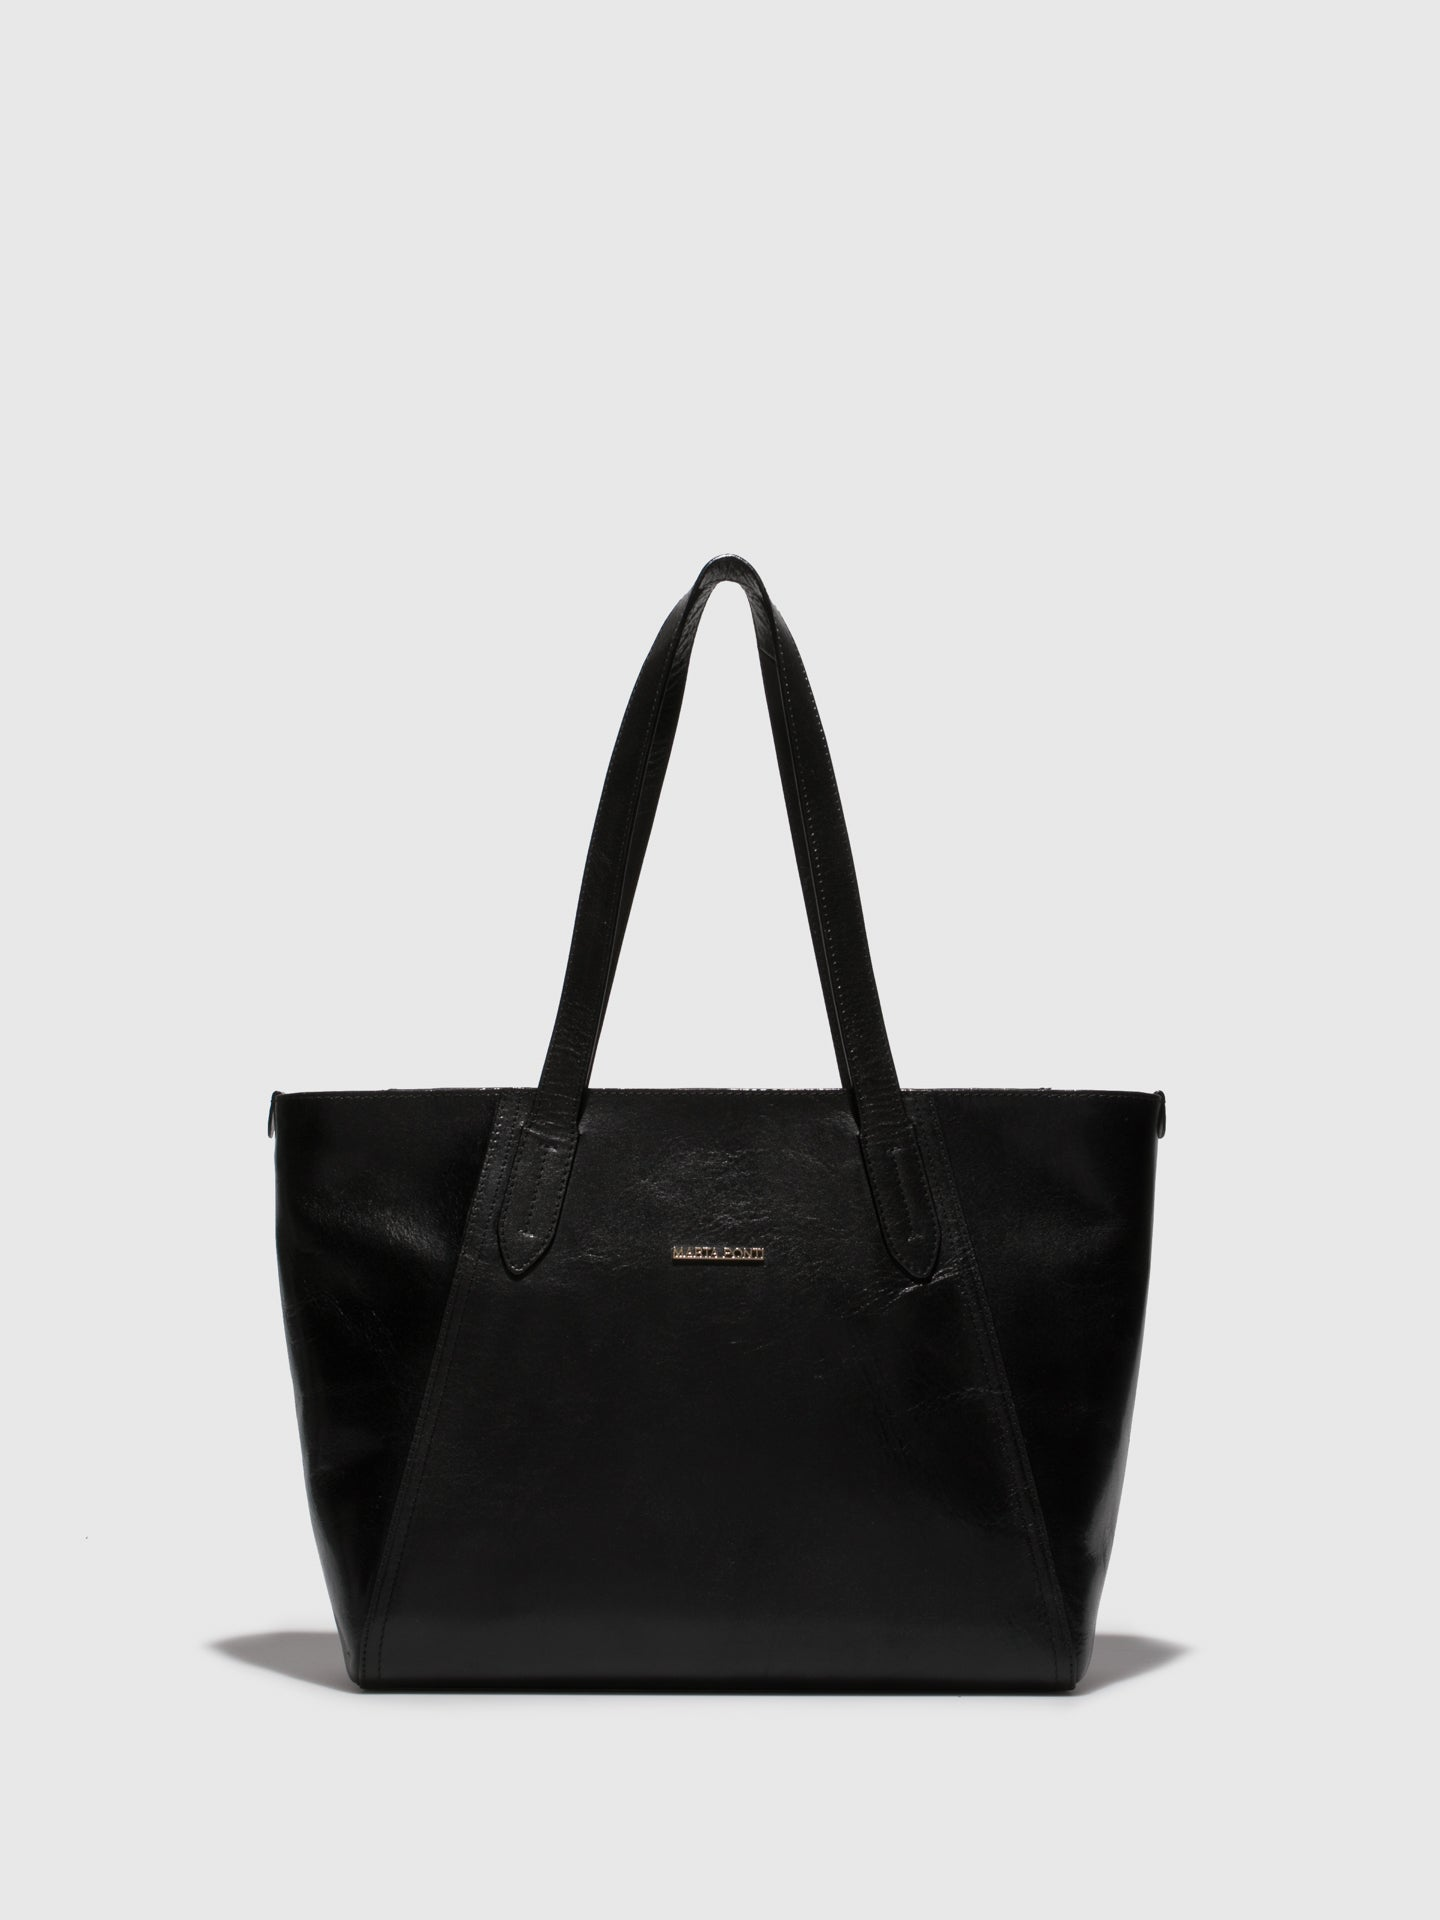 MARTA PONTI Black Shoulder Bag